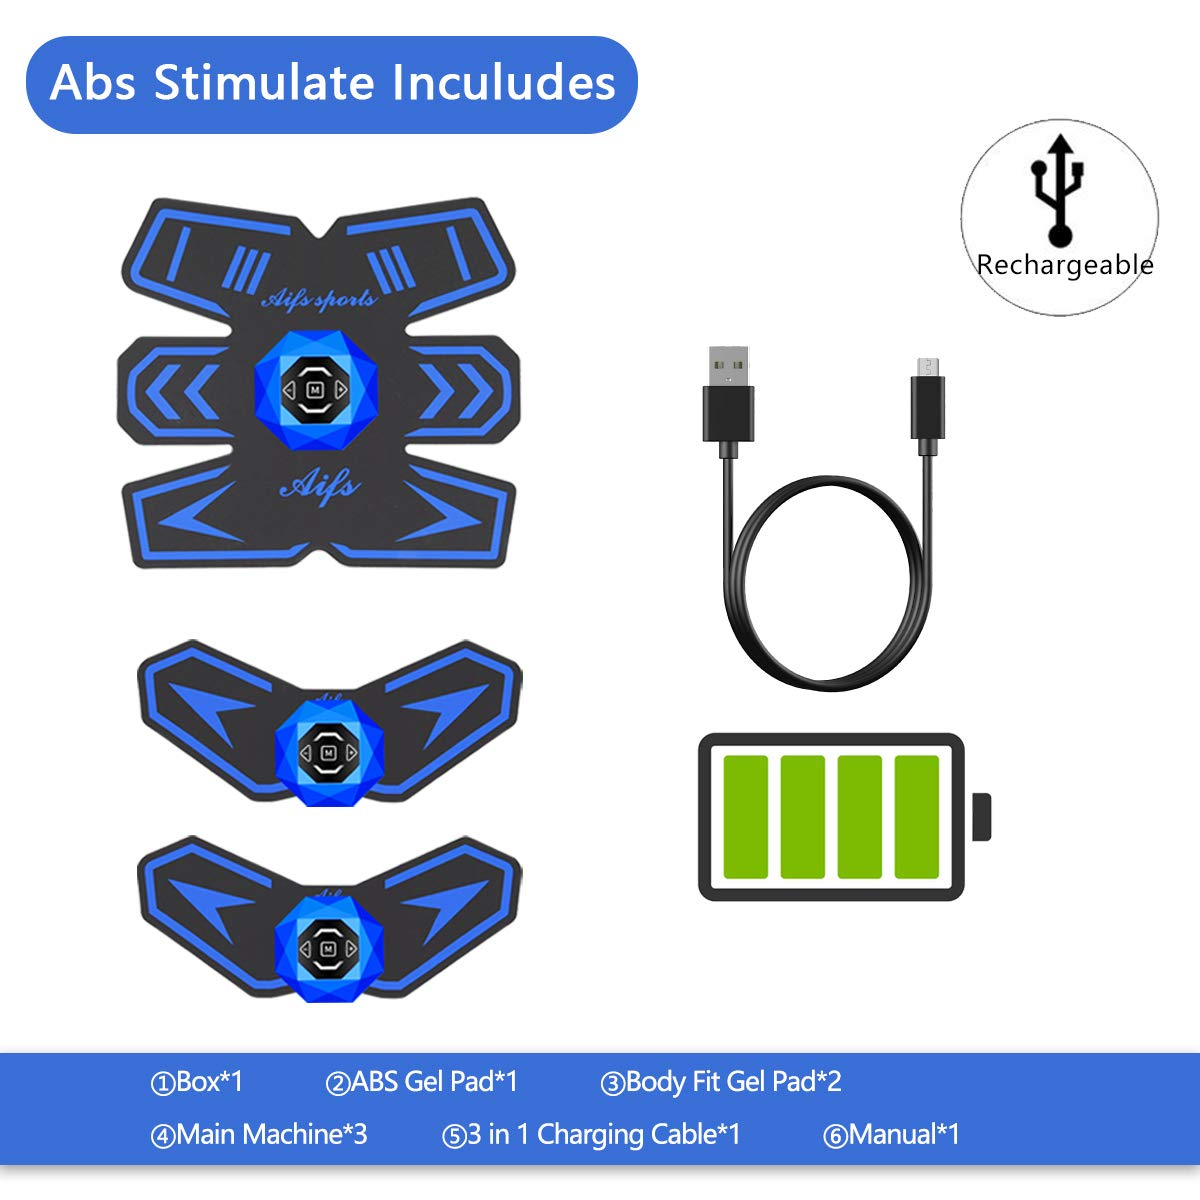 Abs Stimulator/Ab Stimulator/Muscle Toner Rechargeable Muscle Trainer Ultimate Abs Stimulator for Men Women Abdominal Work Out Ads Power Fitness Abs Muscle Training Gear ABS Workout Equipment Portable